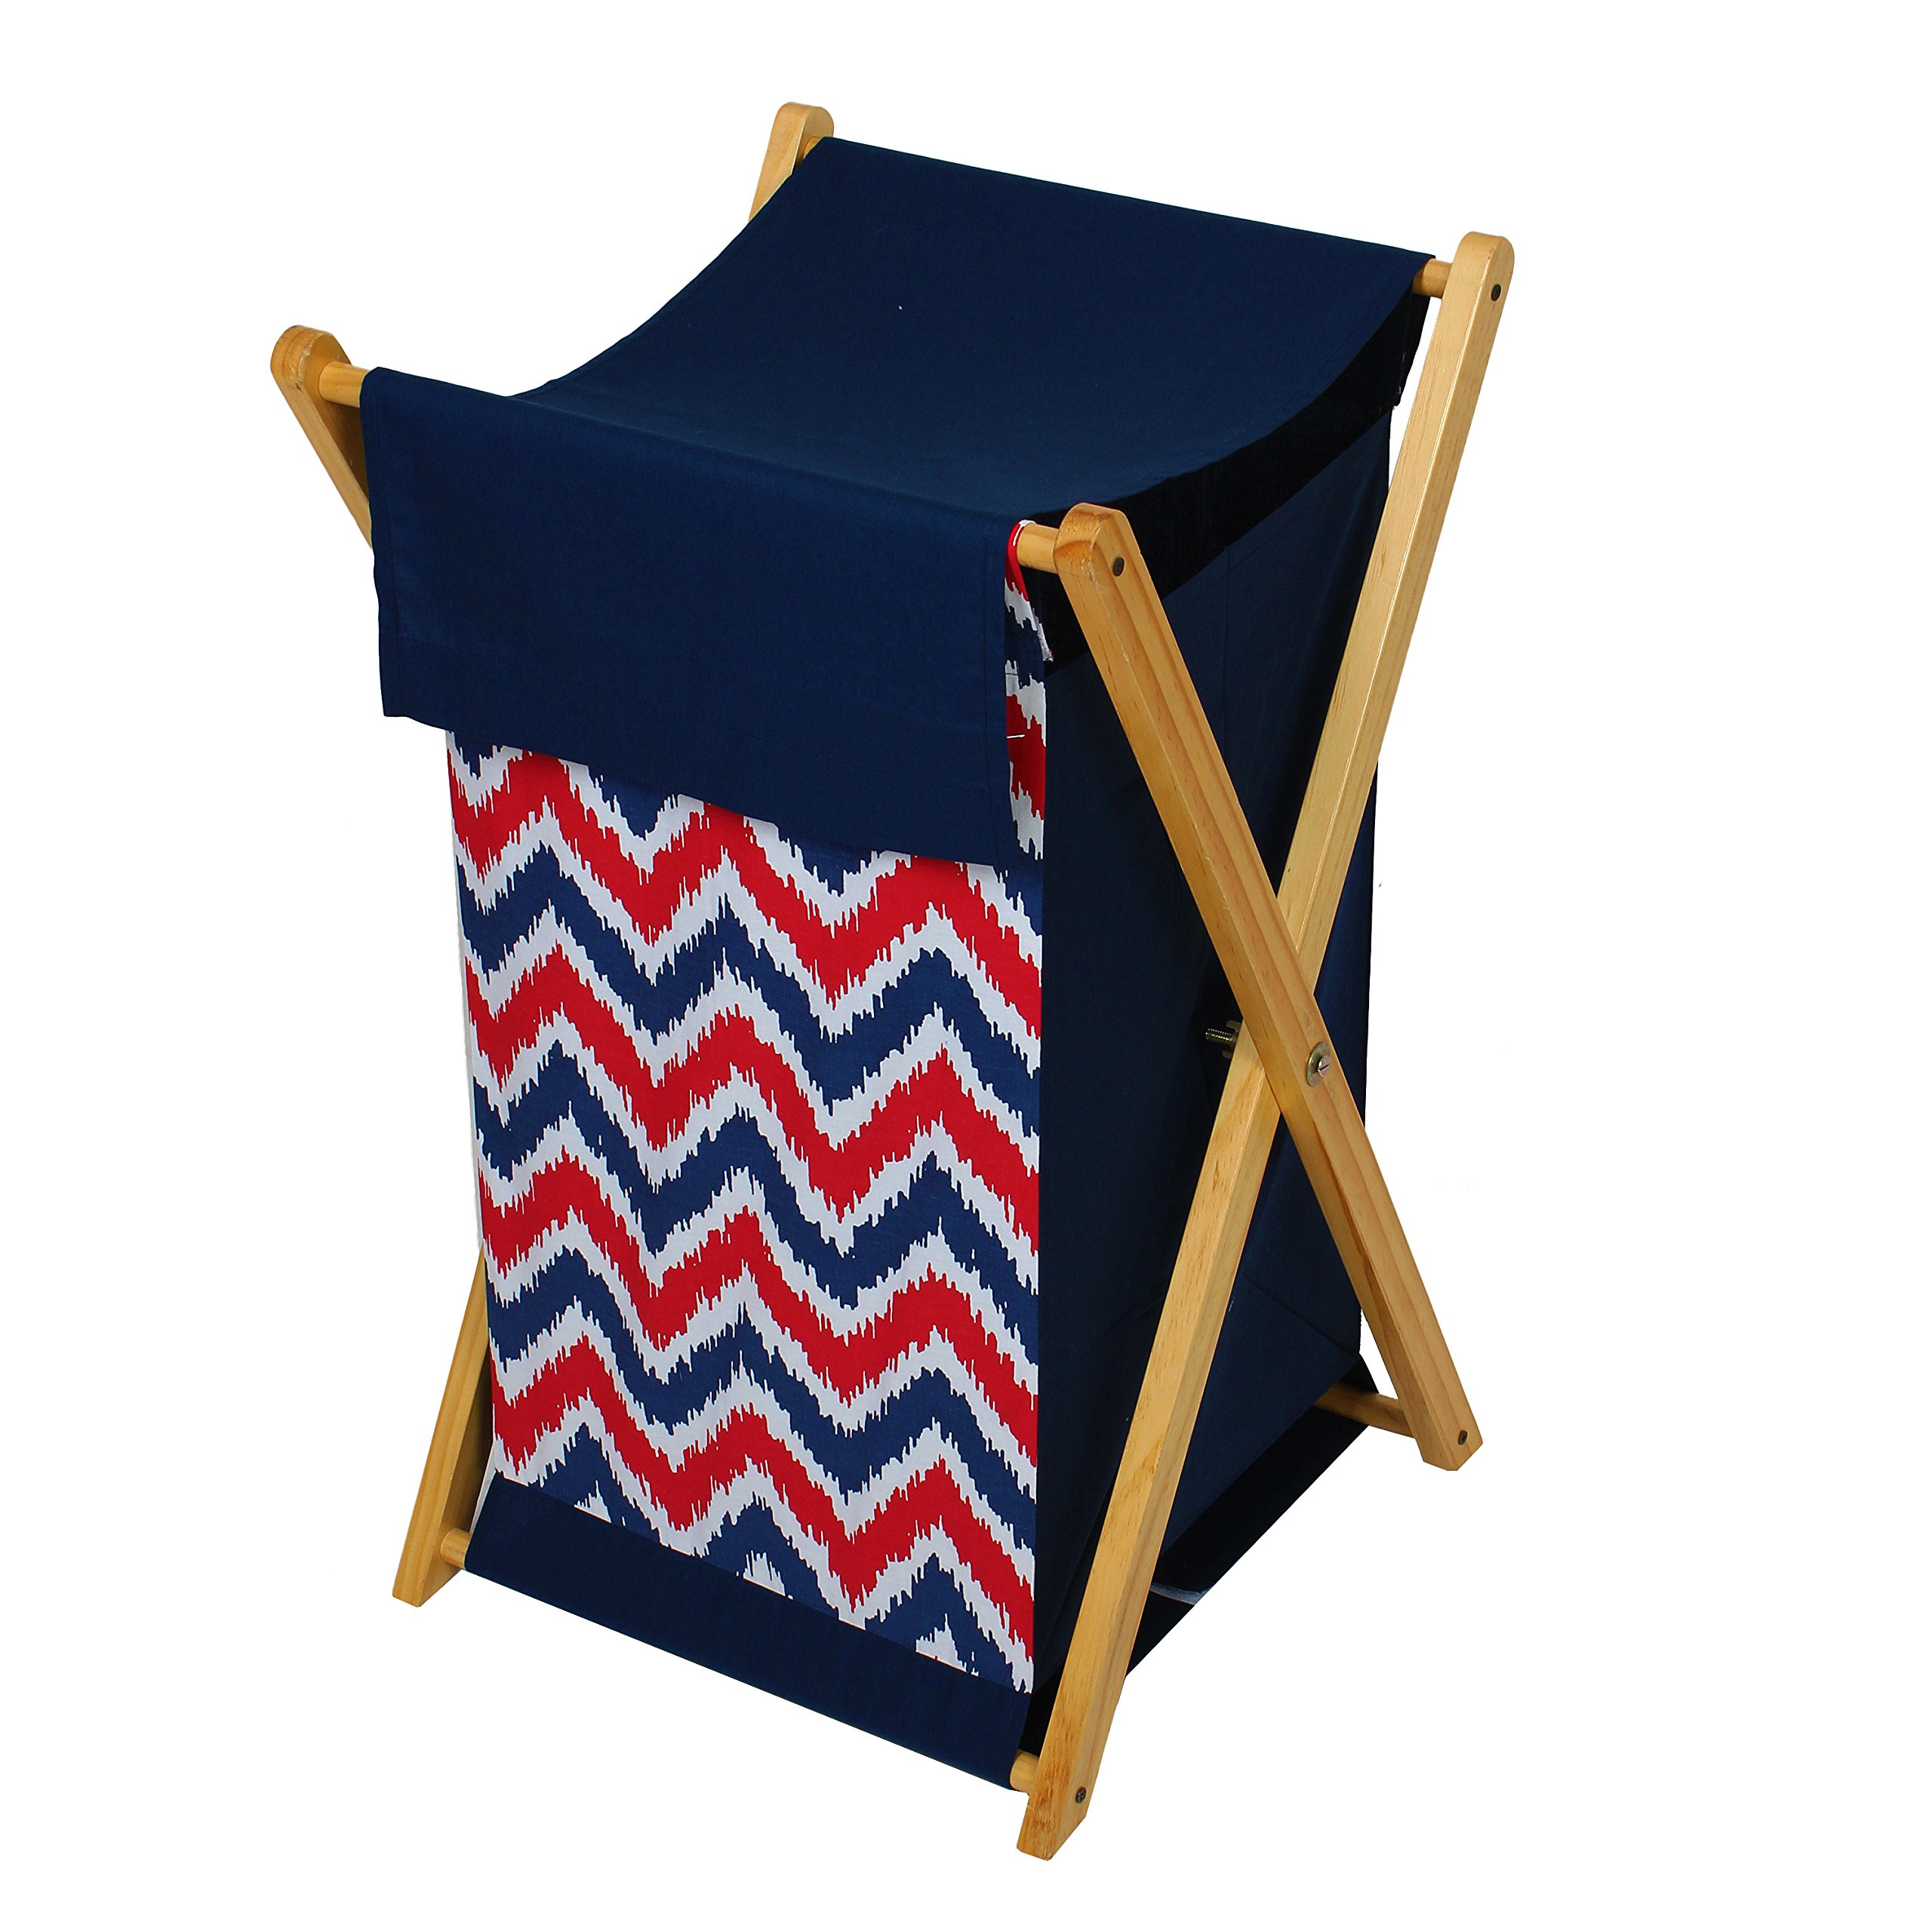 Bacati Mix and Match Zigzag Hamper, Navy/Red by Bacati